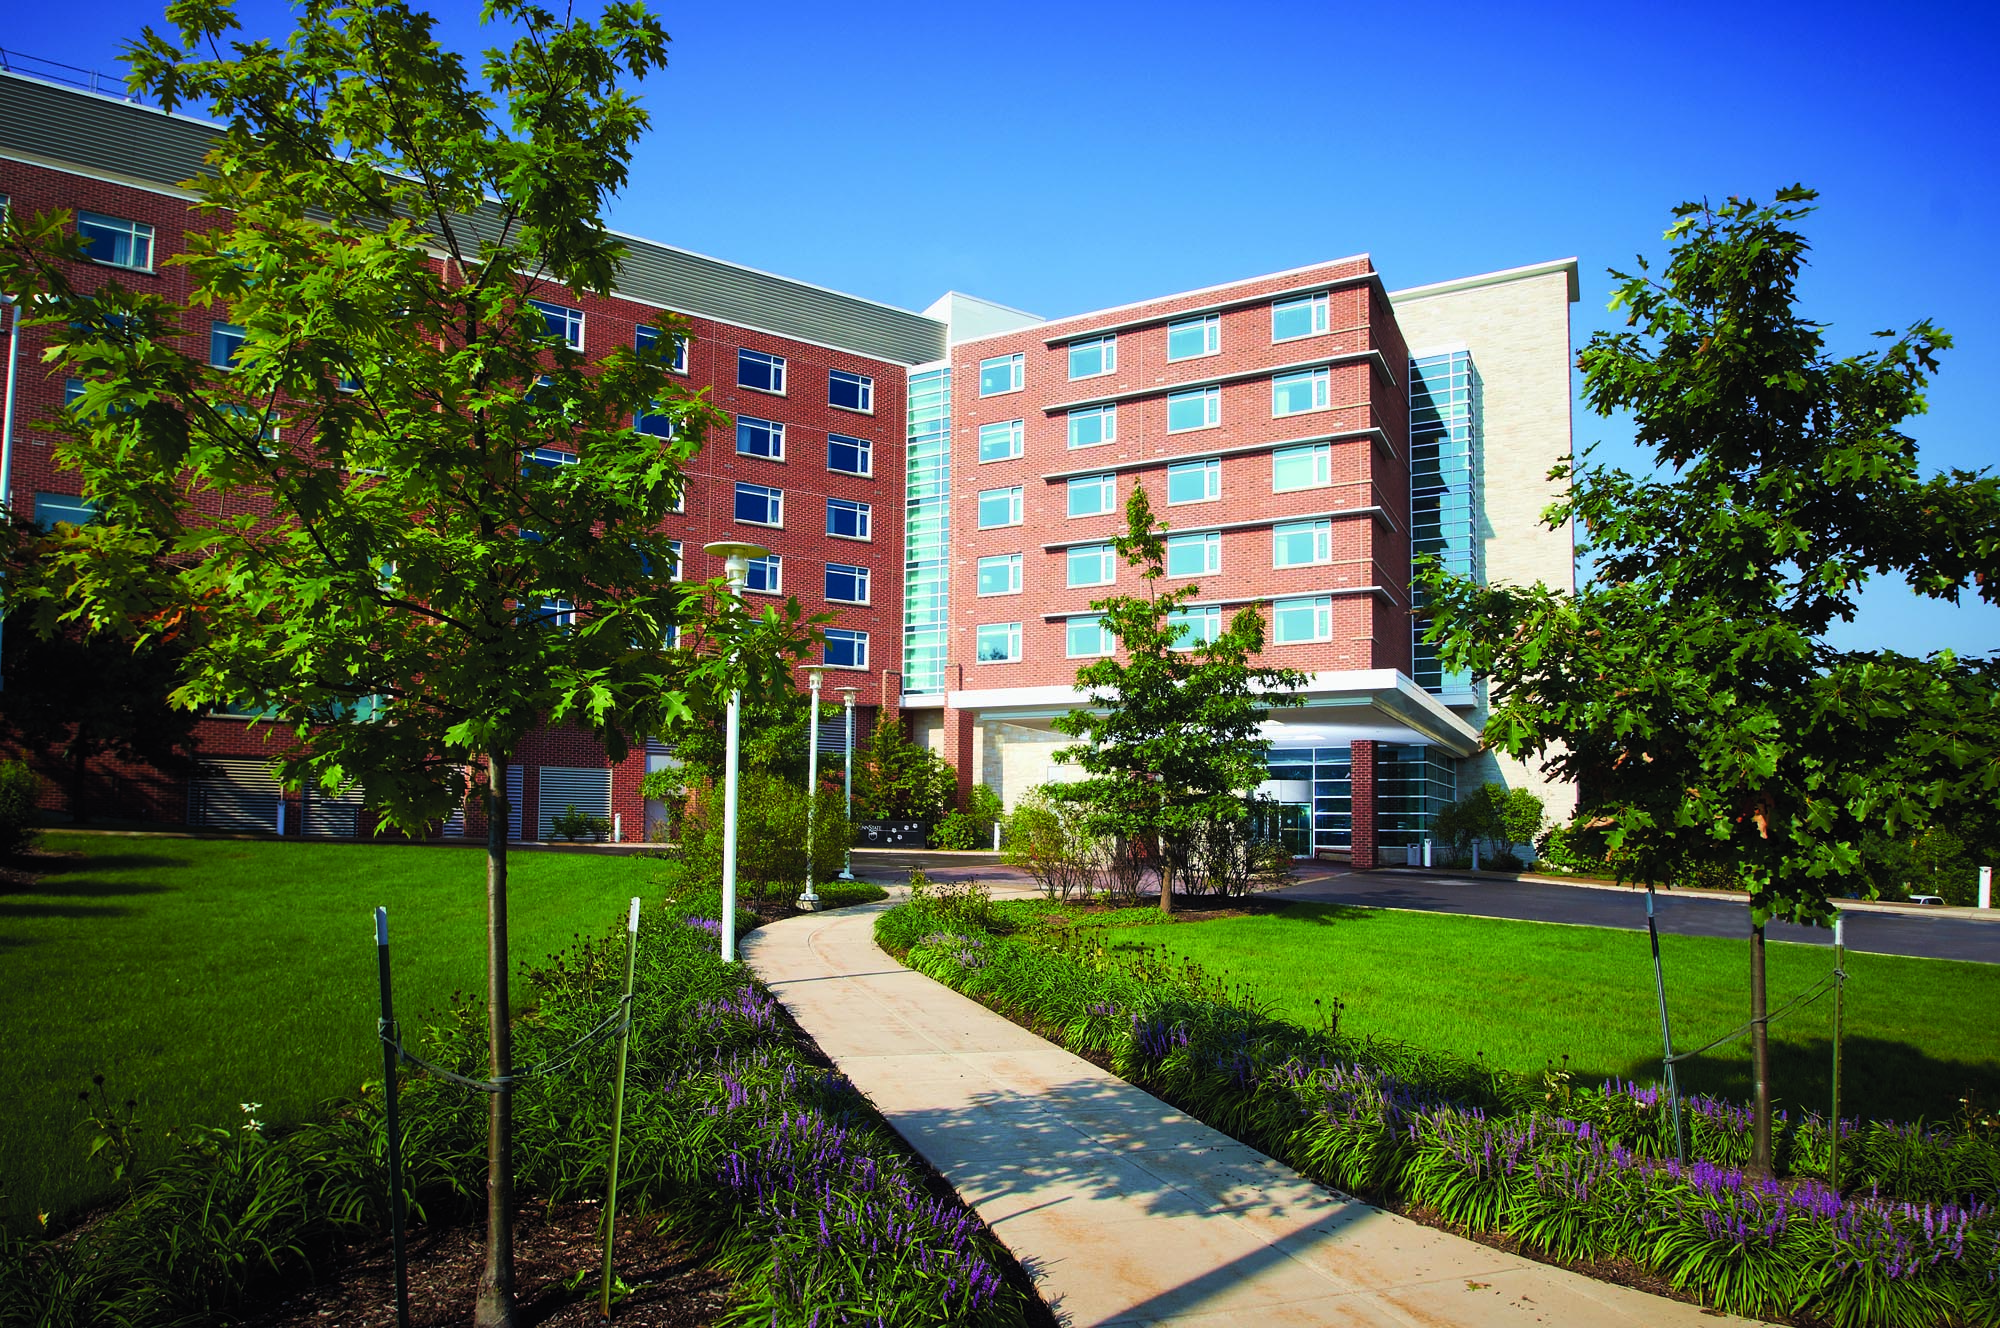 The Penn Stater Hotel Conference Center